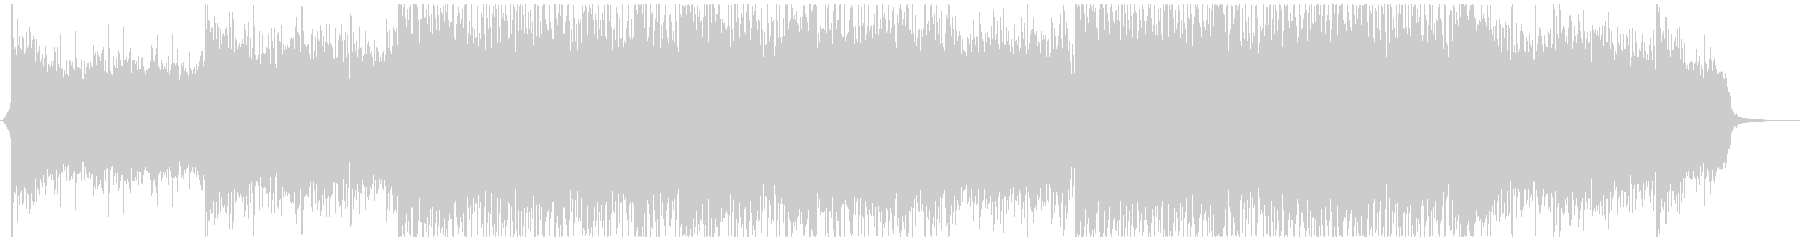 Epic Fantastic Sci-fi Battle Theme's unreproduced waveform